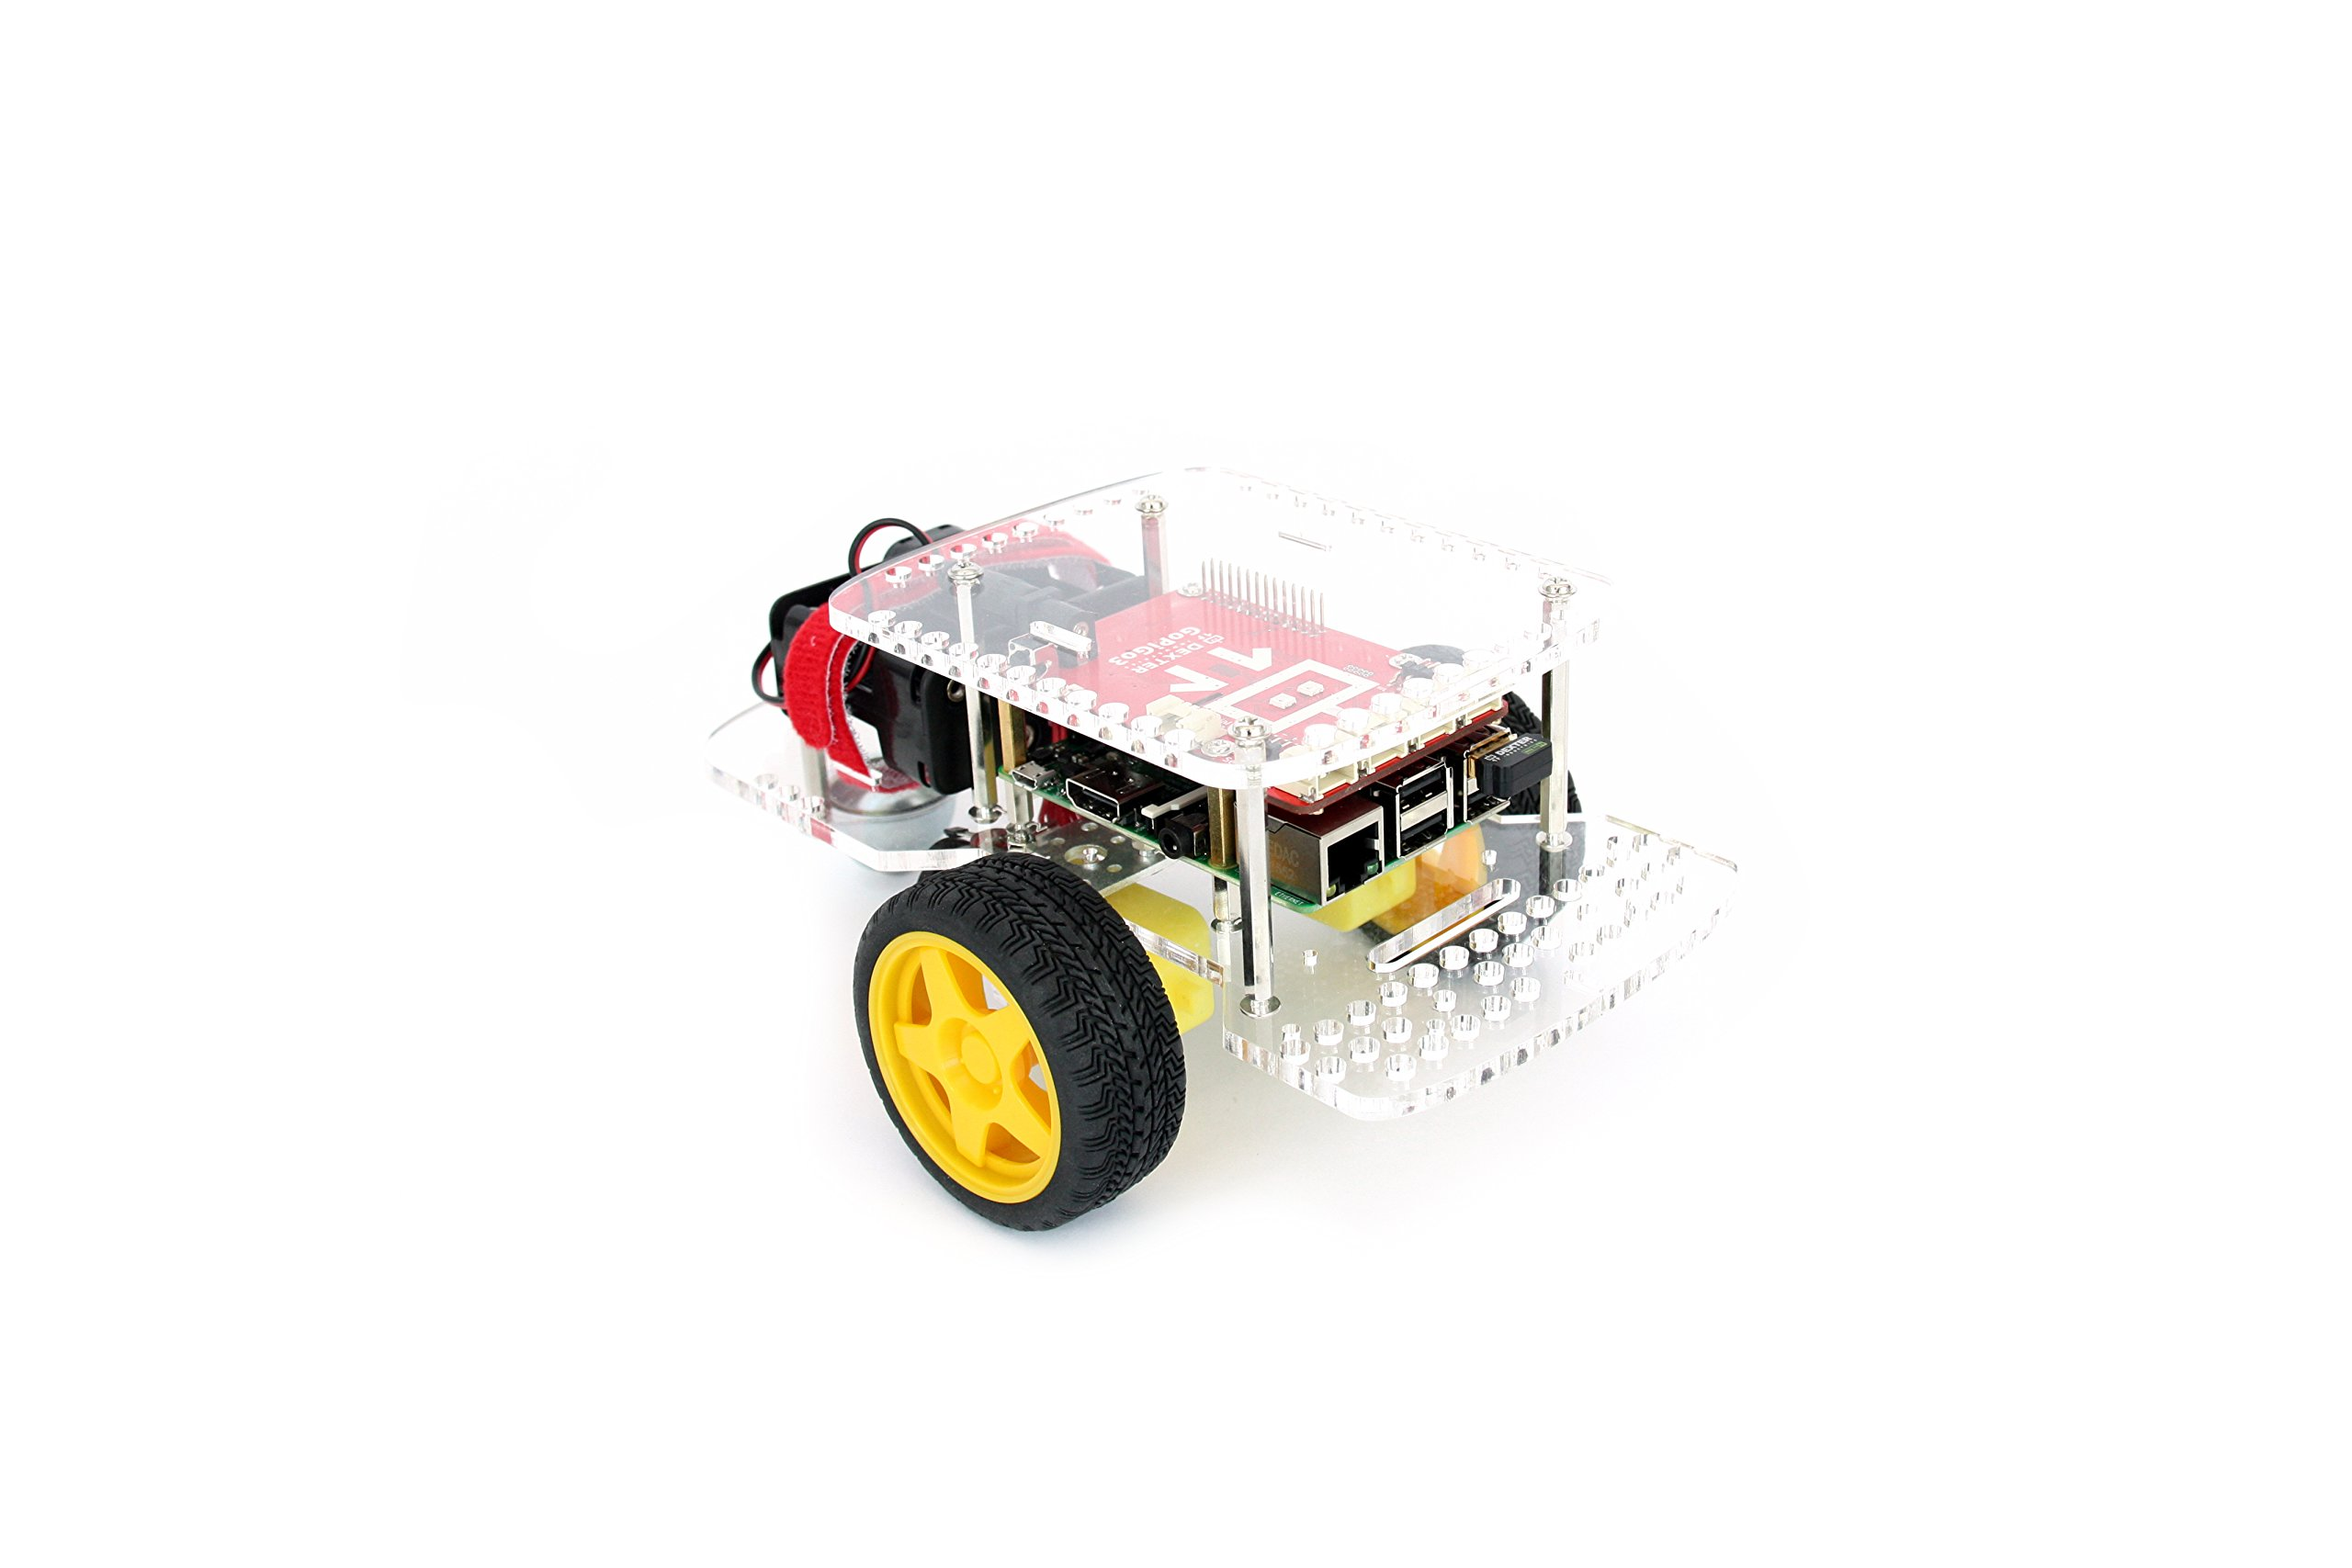 GoPiGo3 Robot Base Kit for STEM Learning with the Raspberry Pi